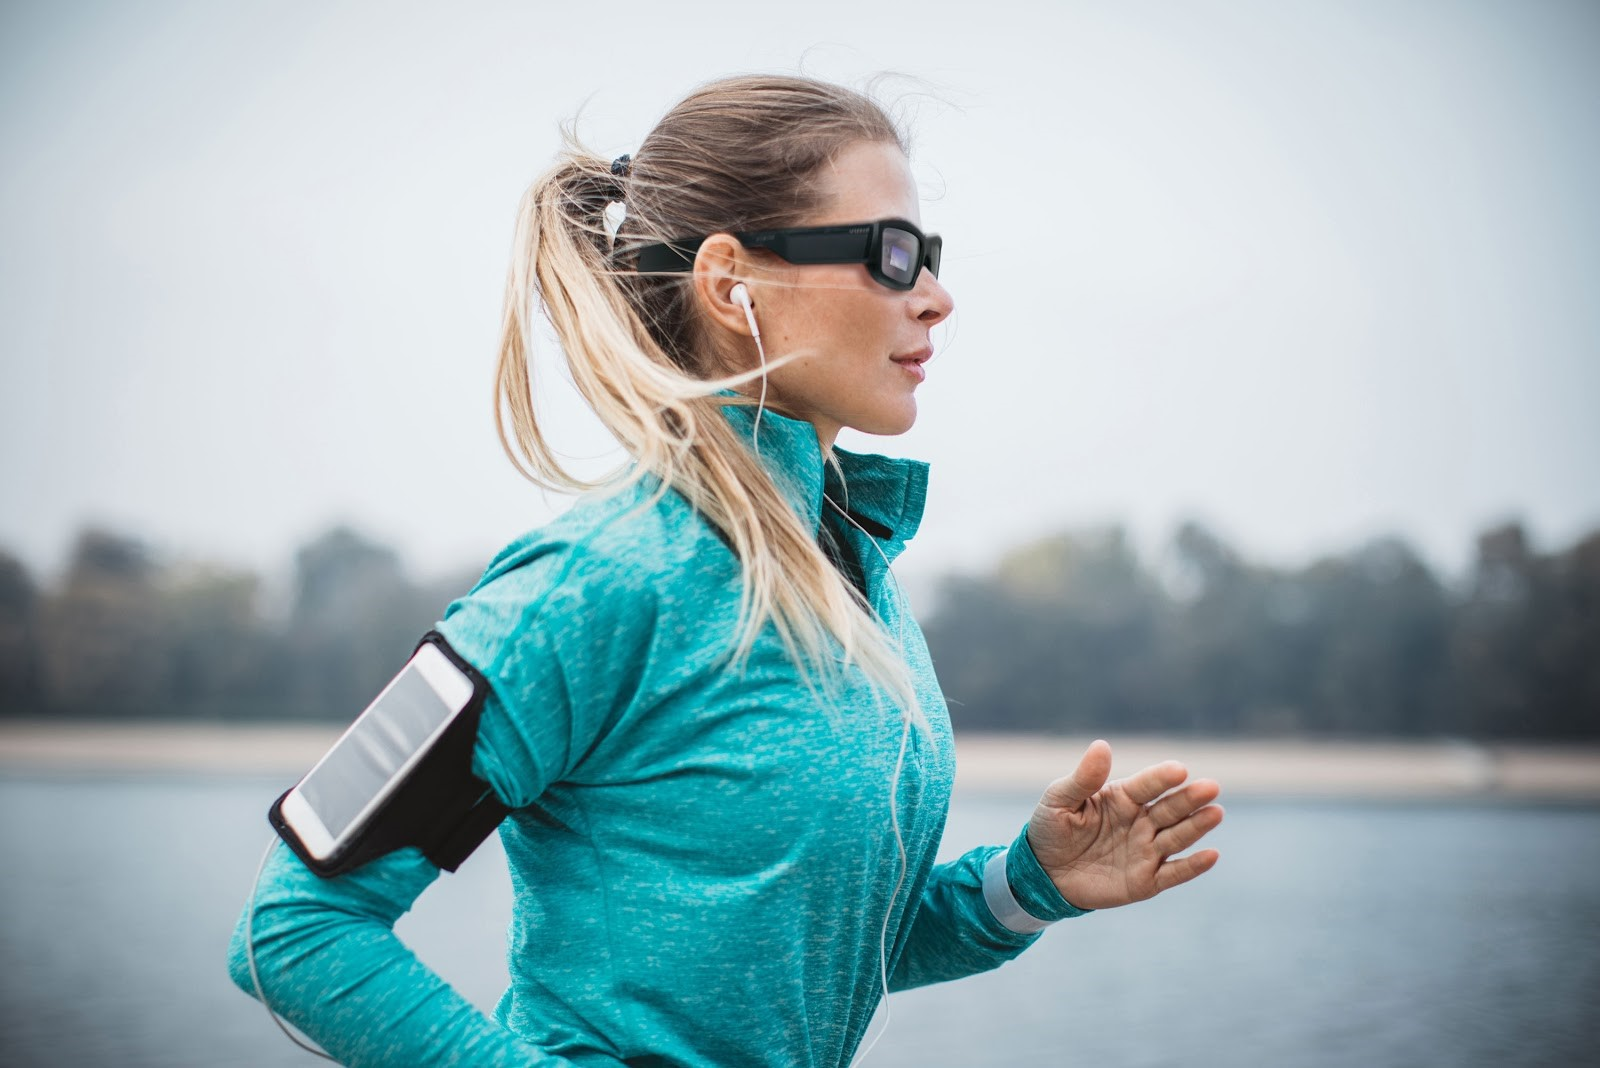 Vuzix a Global Leader in Healthcare Wearables